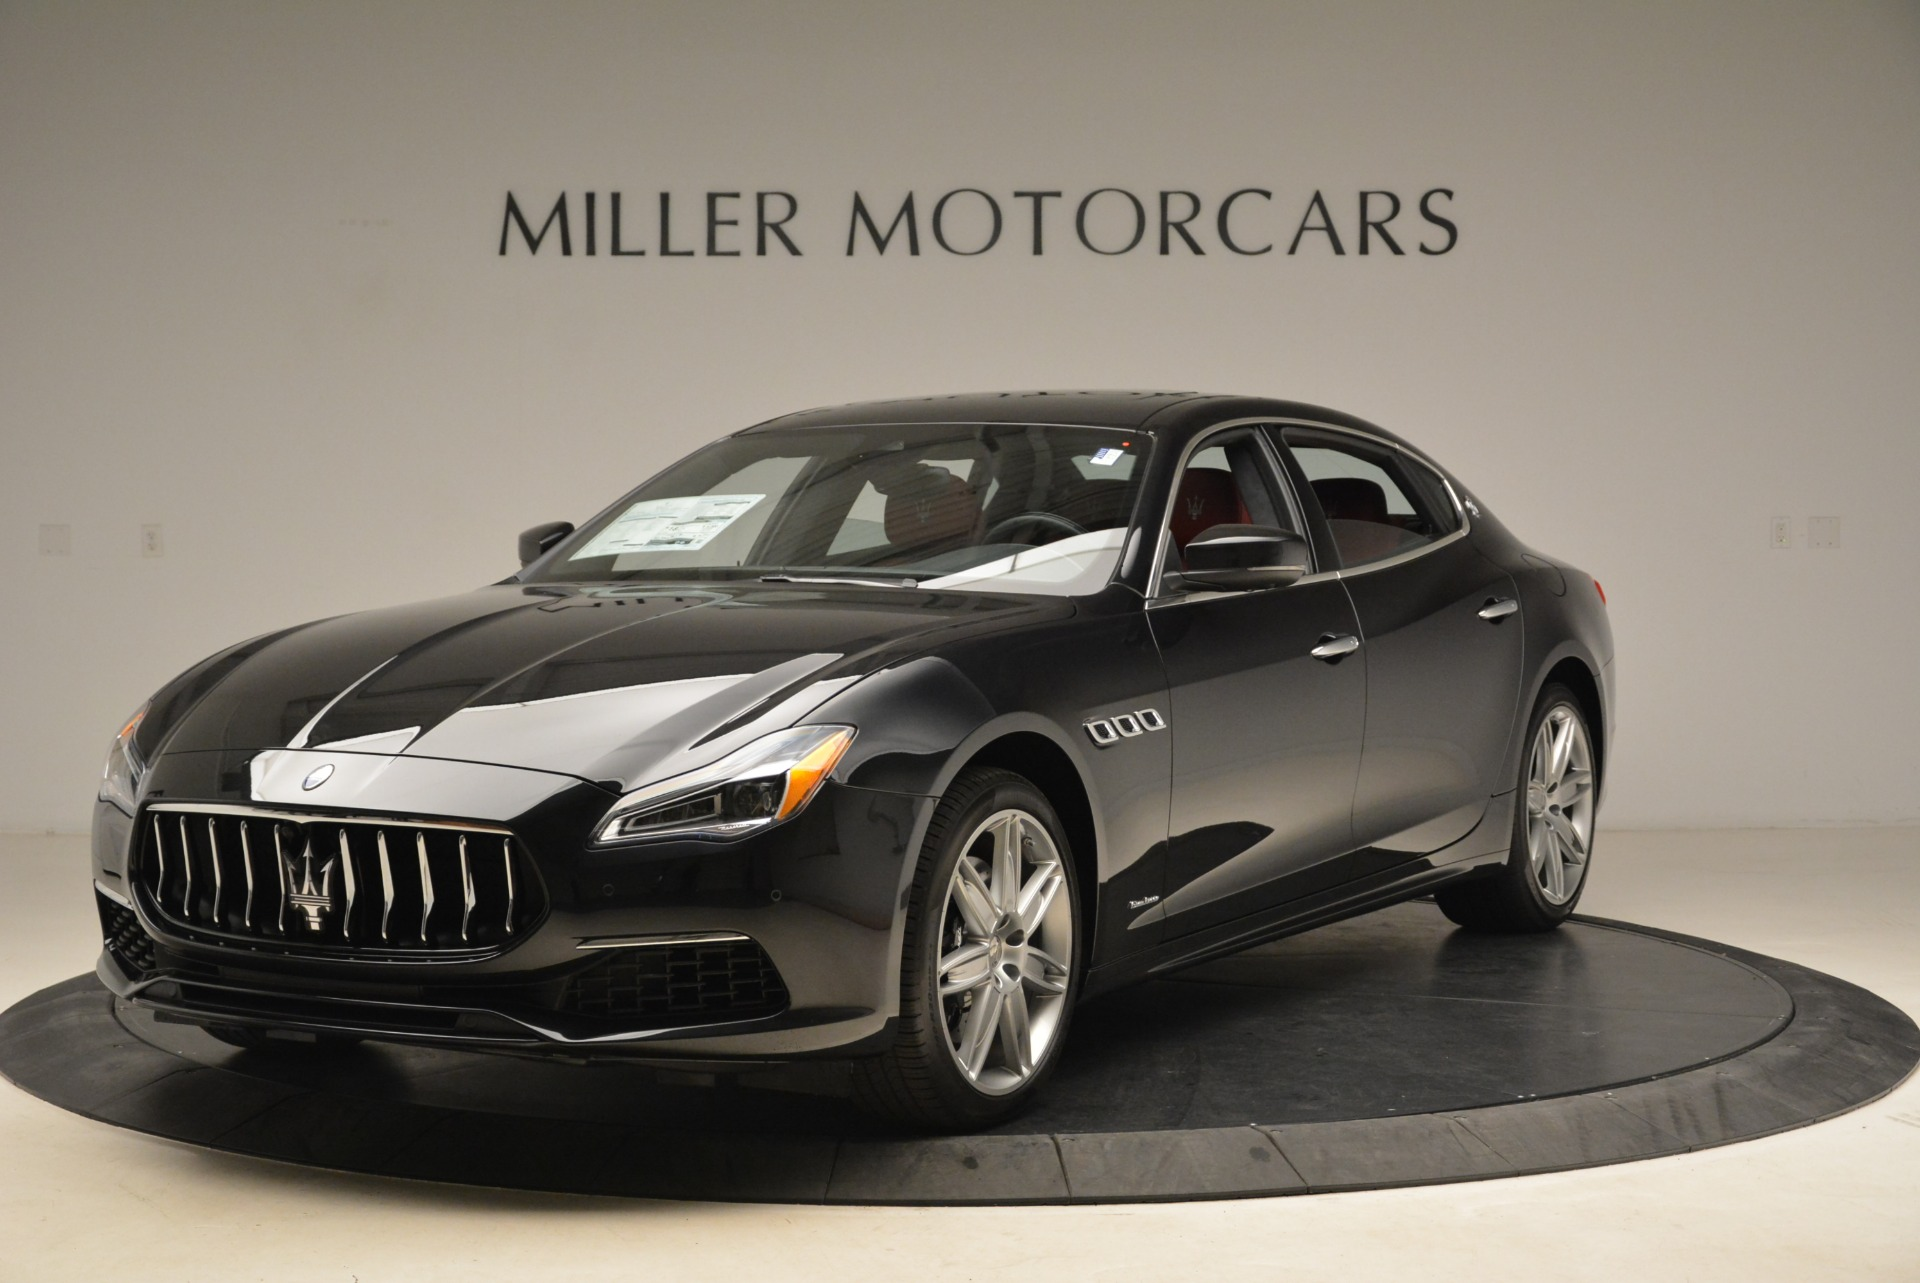 New 2018 Maserati Quattroporte S Q4 GranLusso For Sale In Greenwich, CT. Alfa Romeo of Greenwich, M2164 2296_main